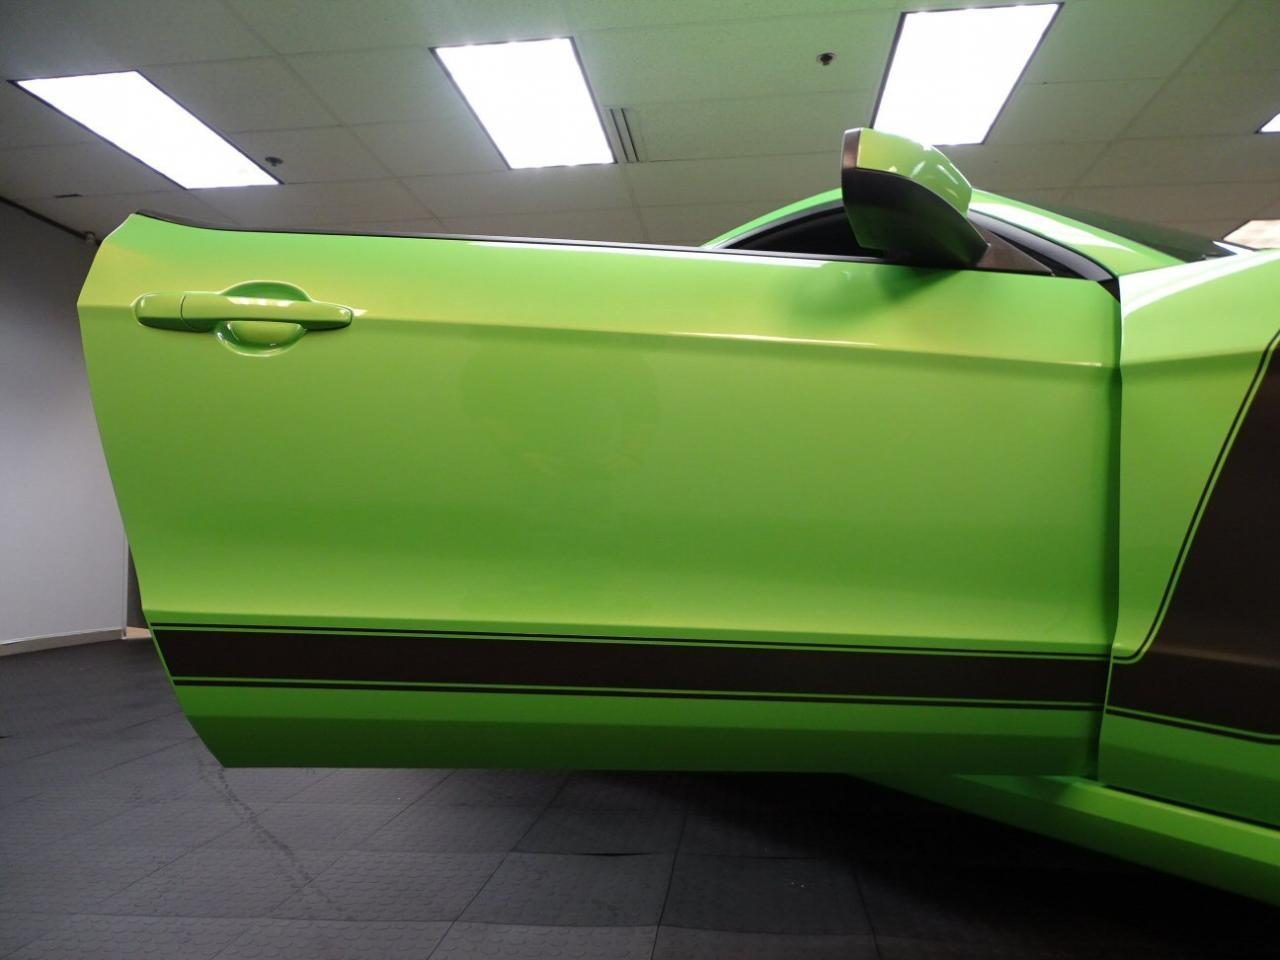 Large Picture of '13 Ford Mustang located in Dearborn Michigan Offered by Gateway Classic Cars - Detroit - MGI5